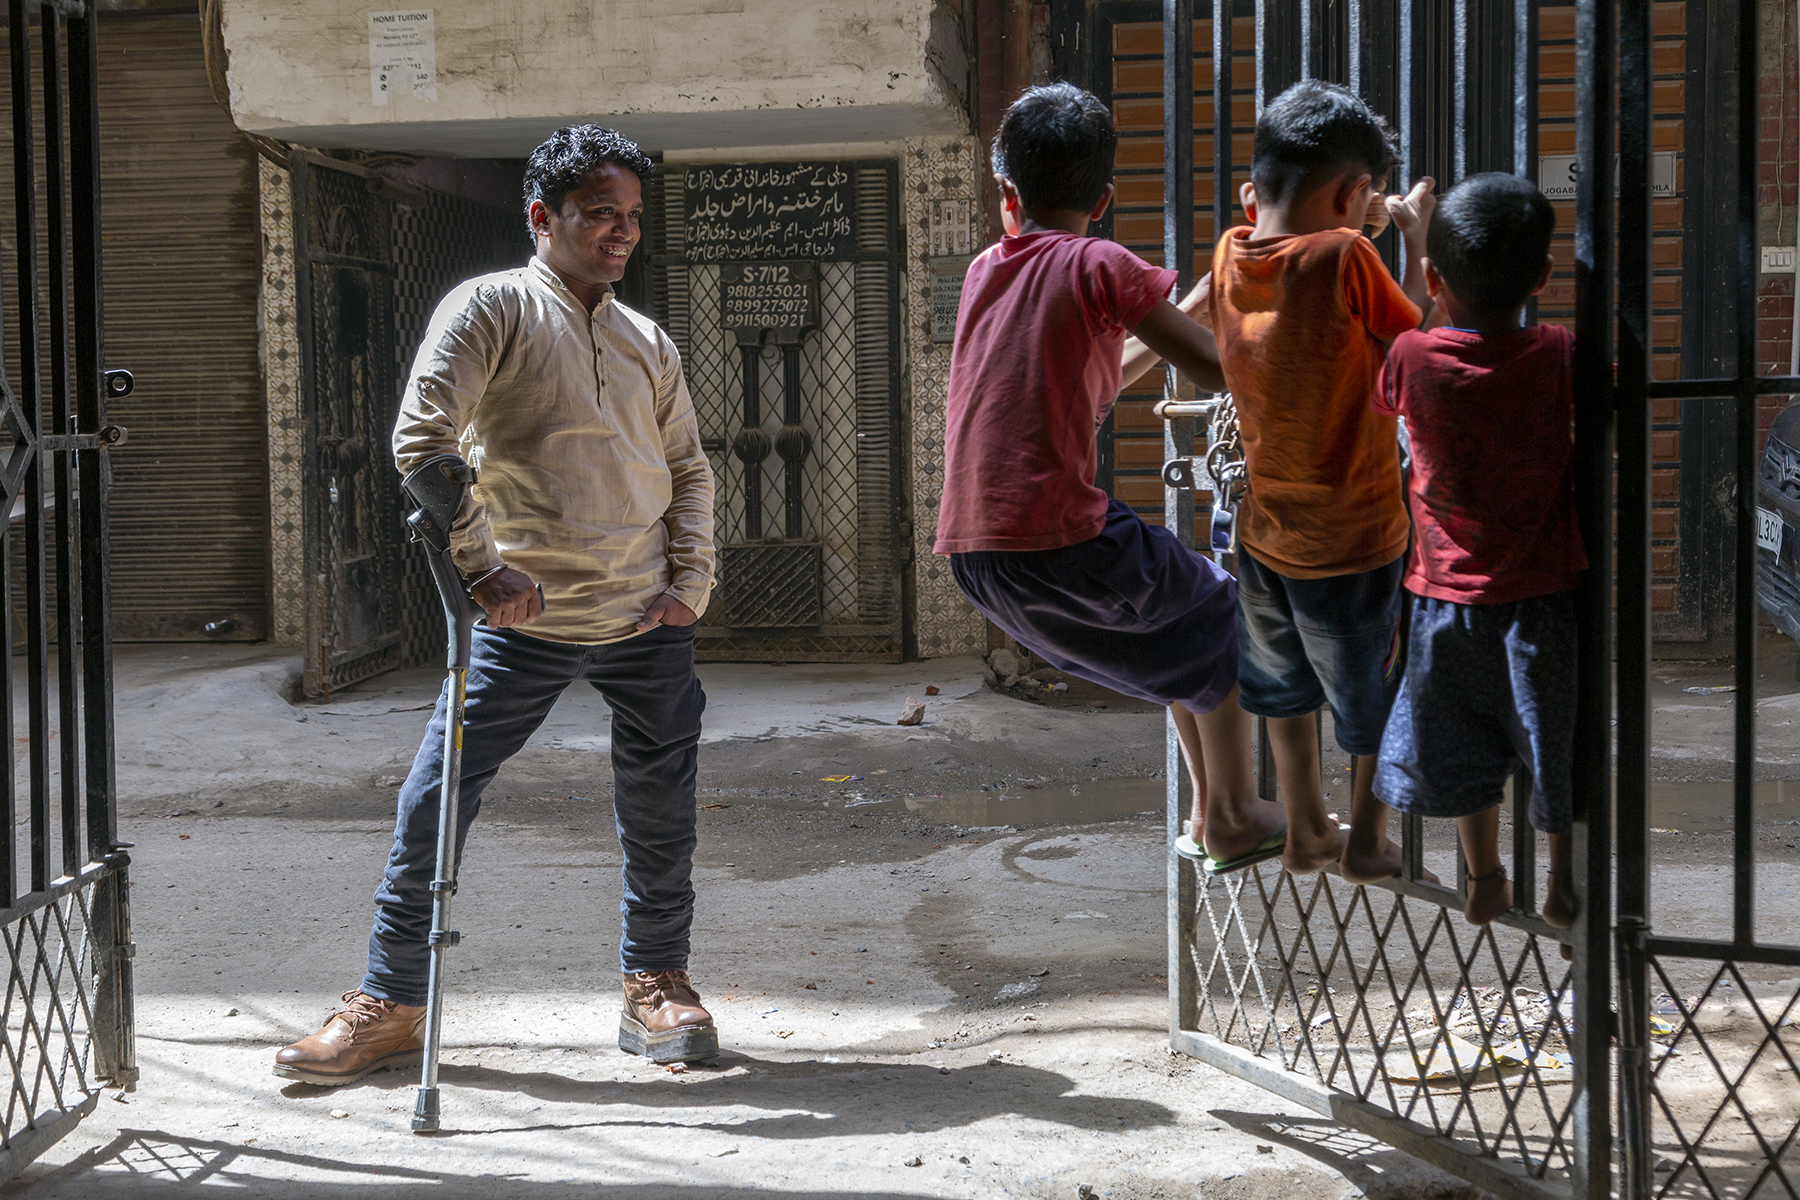 Niyaz wearing a beige kurti and blue jeans stands on the road outside the open front gates of a house. He is leaning on his crutch and smiling at three little boys in shorts and T-shirts who are swinging on one of the gates. They have their backs to us as they stand in a row, clinging to the vertical bars of the gate, their feet placed on one of the higher horizontal bars.